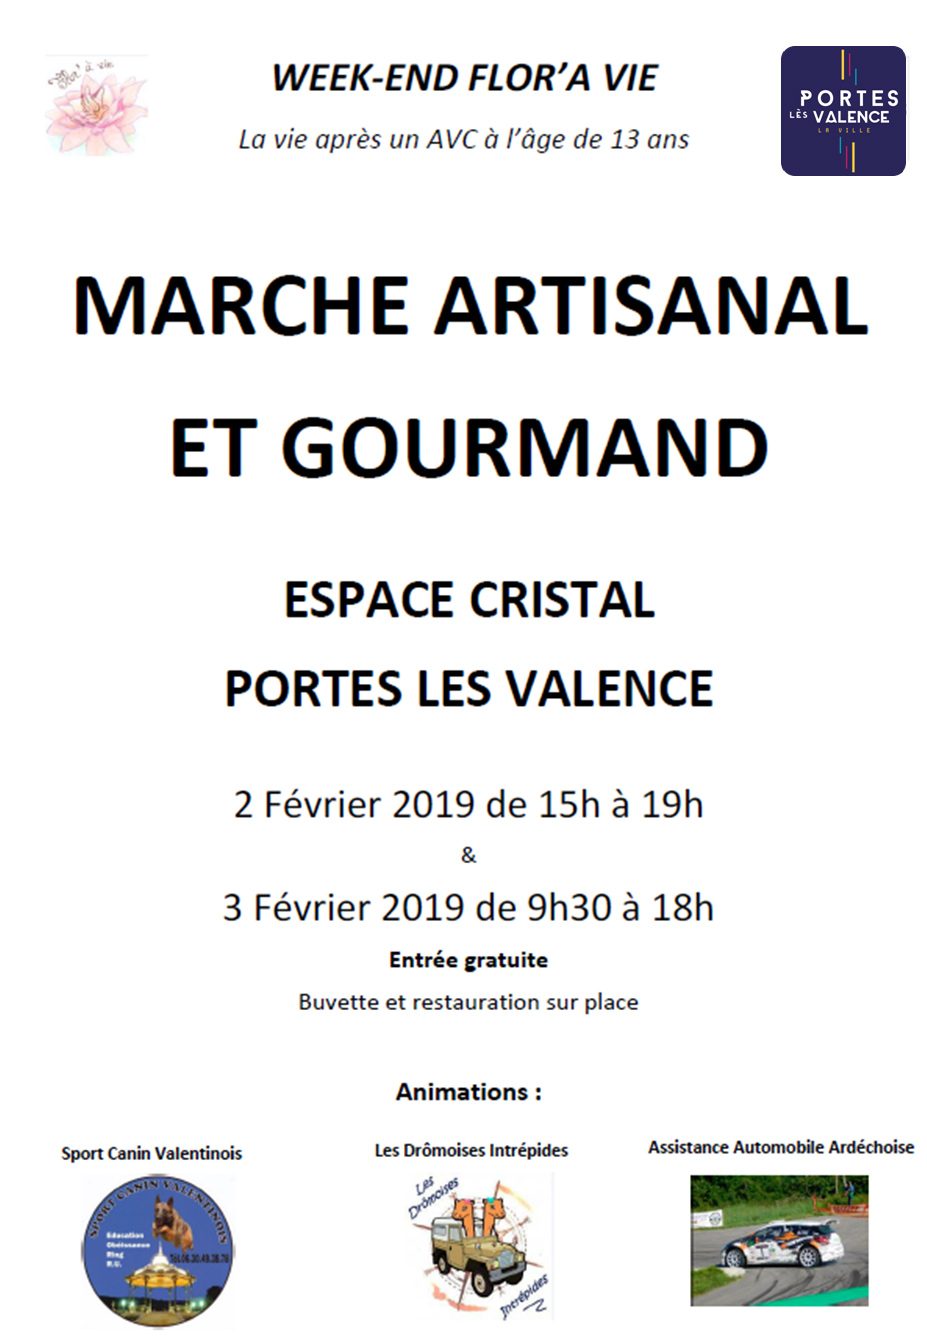 Marché artisanale & gourmand